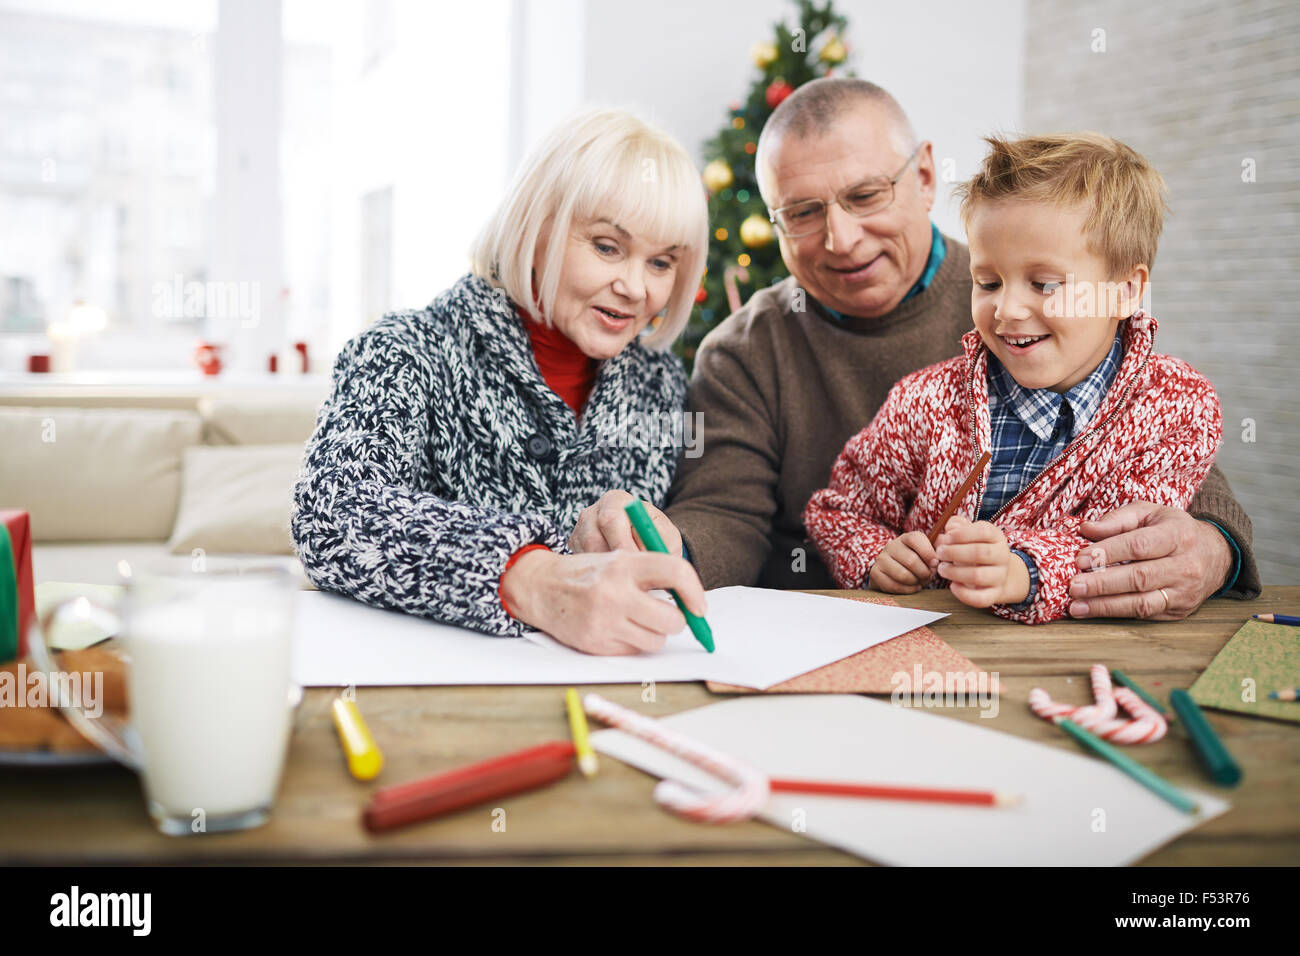 Little boy painting with grandpa and grandma - Stock Image